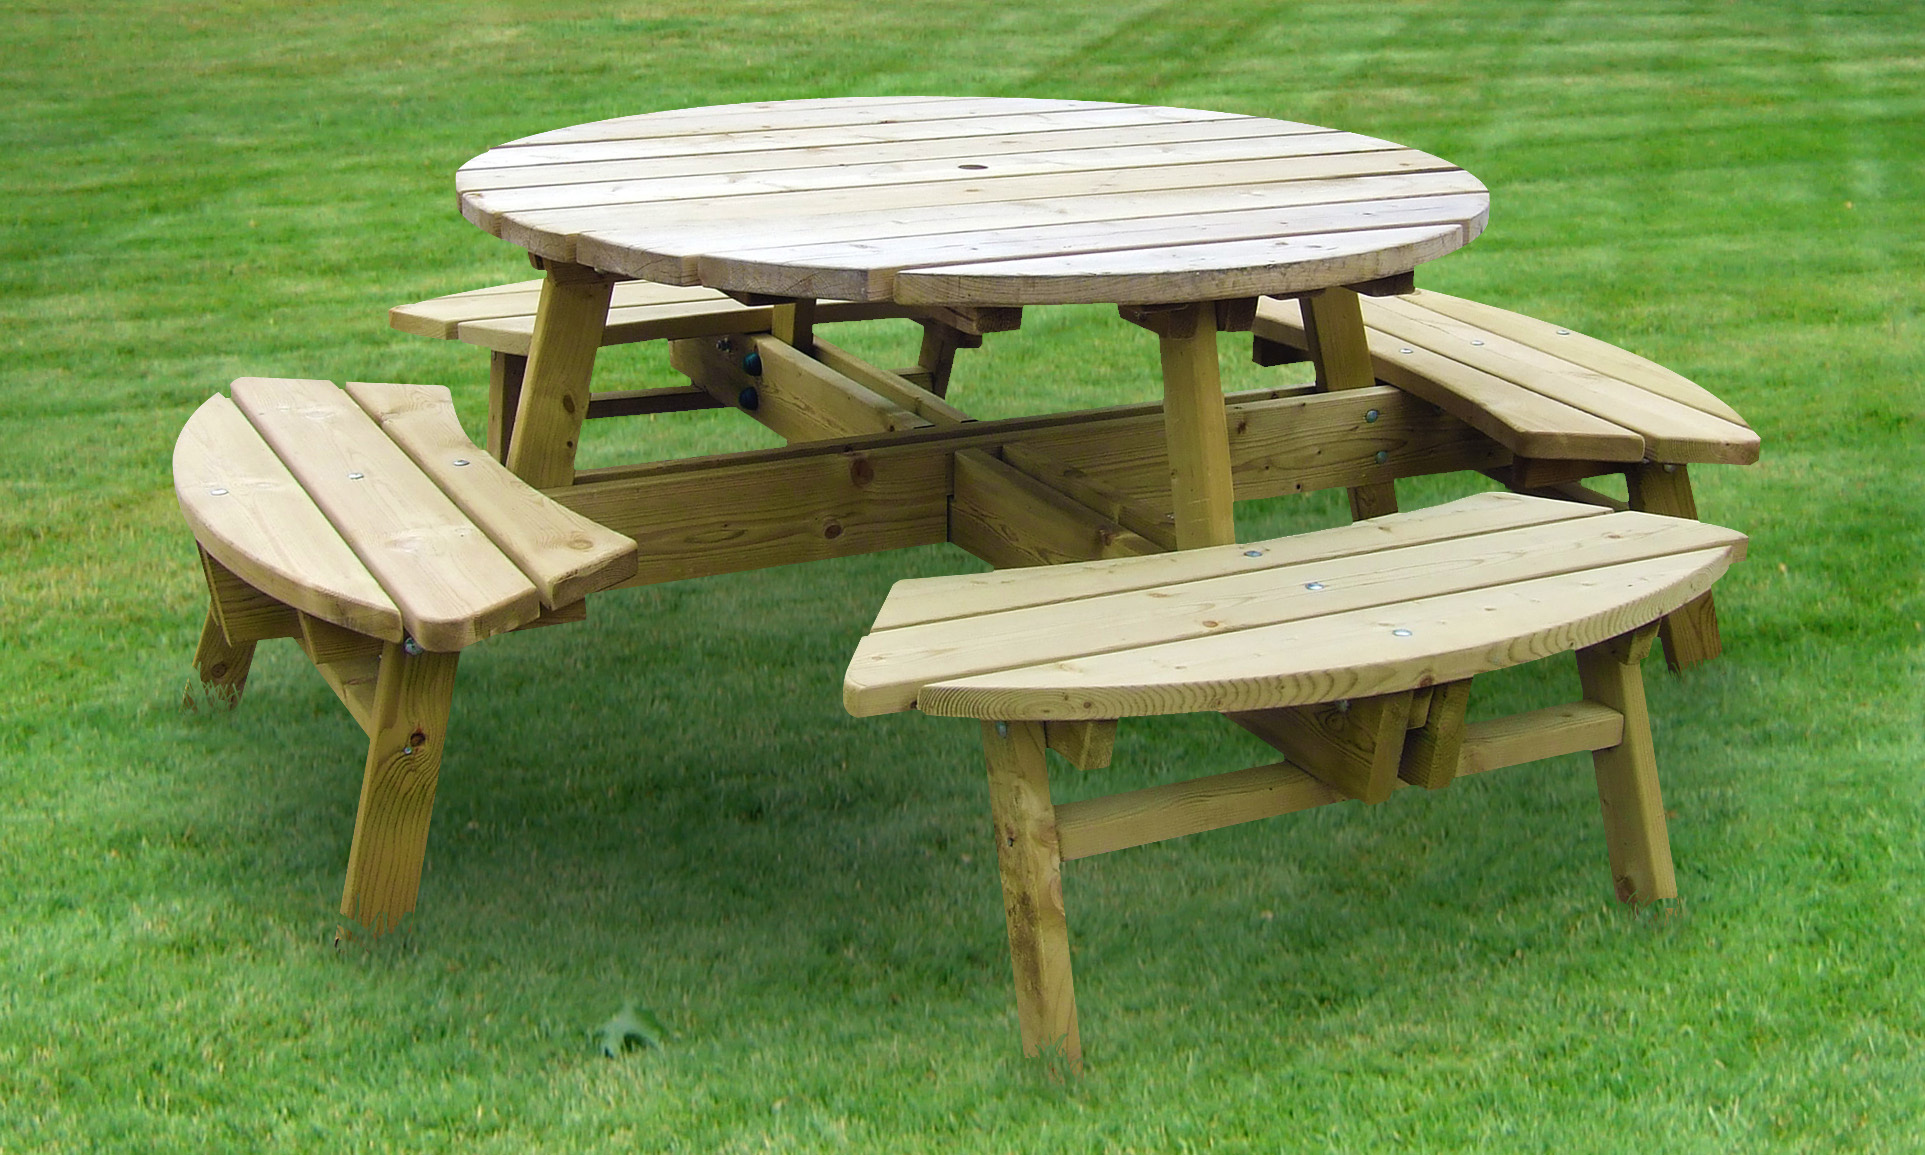 Pub/Picnic Tables